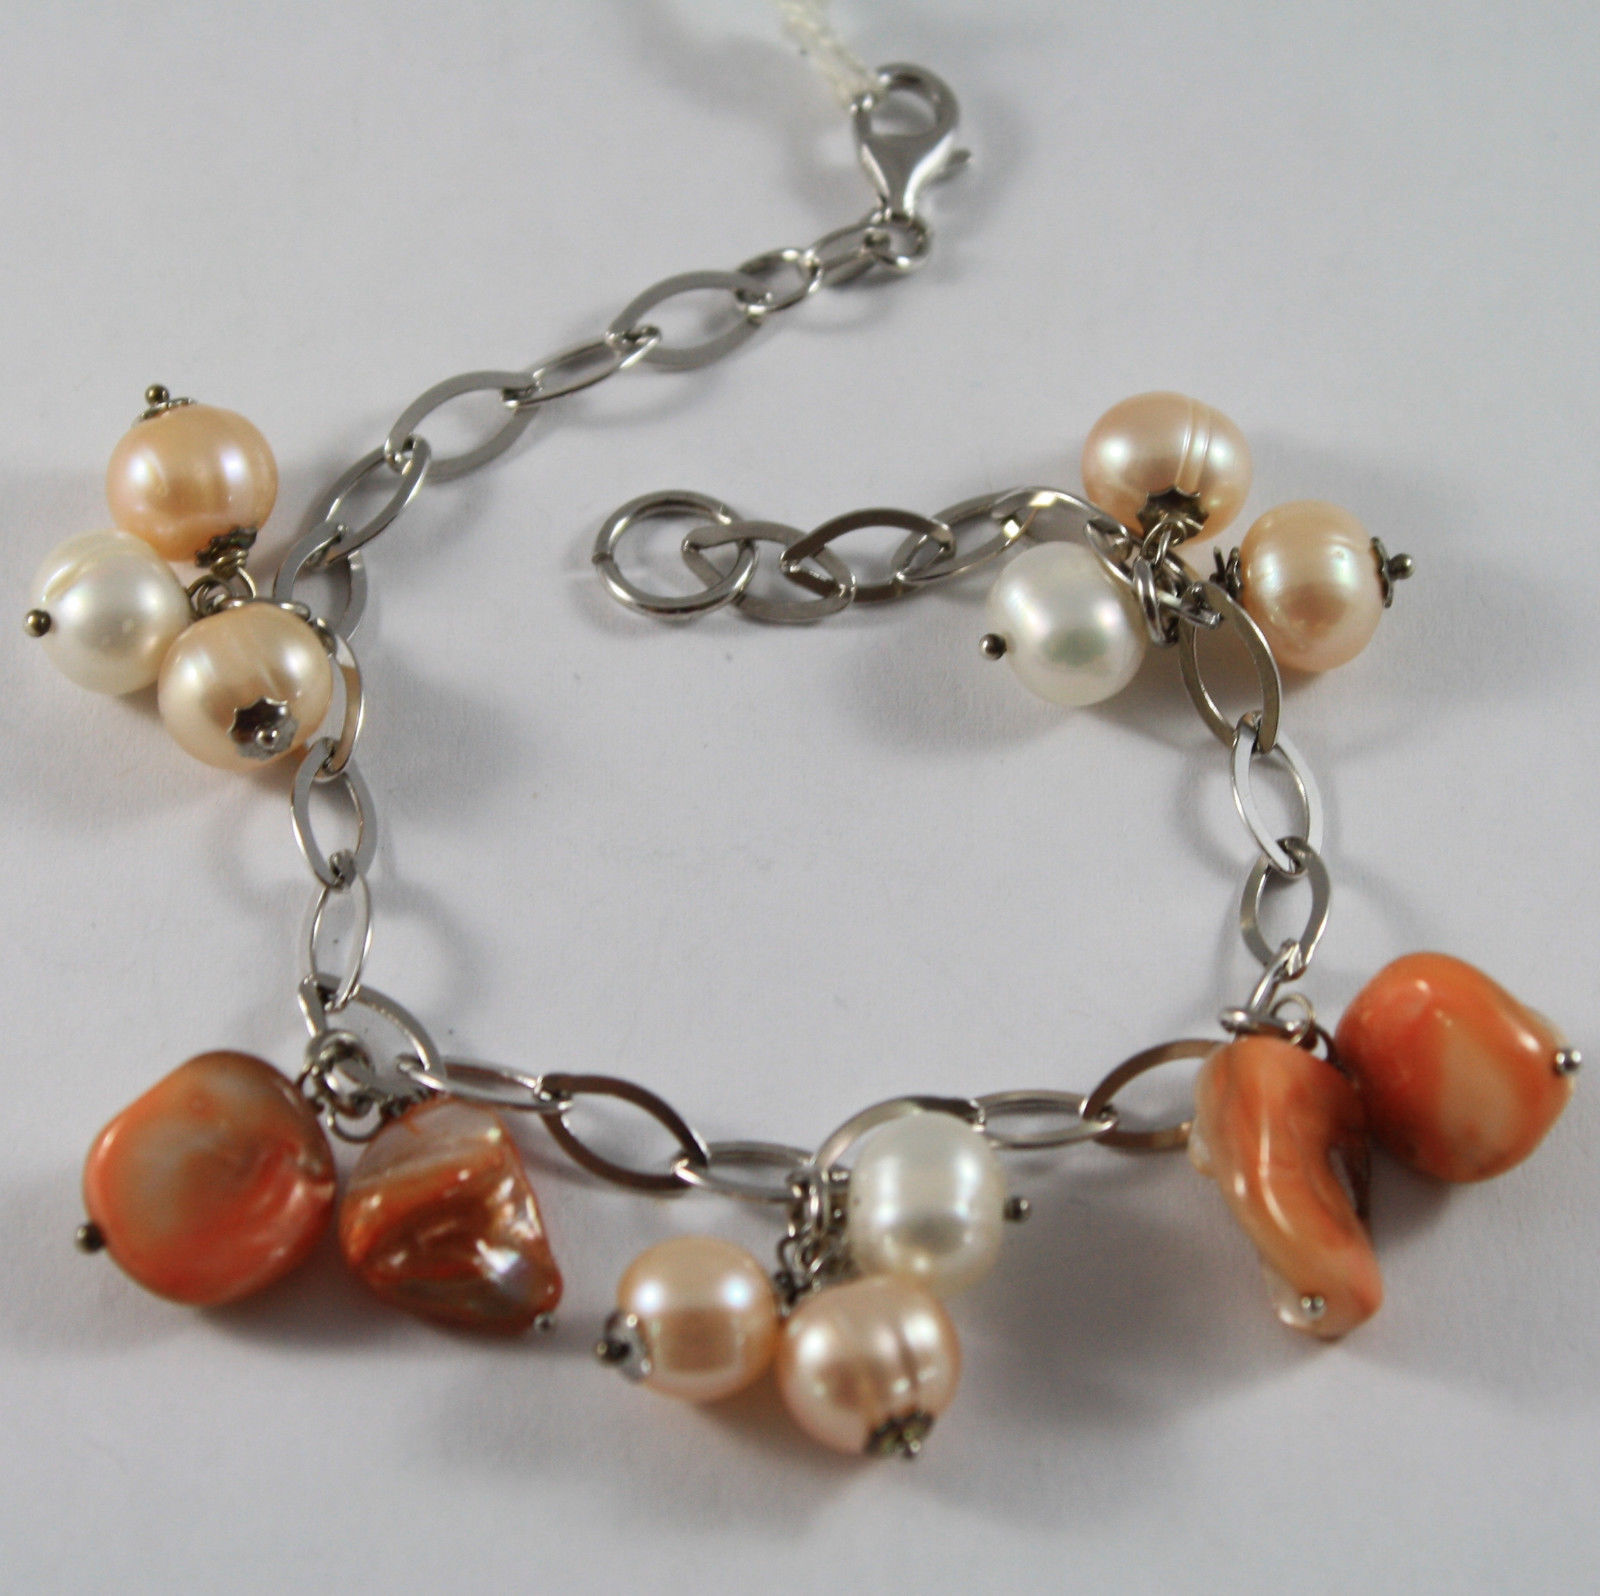 .925 RHODIUM SILVER BRACELET WITH ORANGE MOTHER OF PEARL AND ROSE & WHITE PEARLS